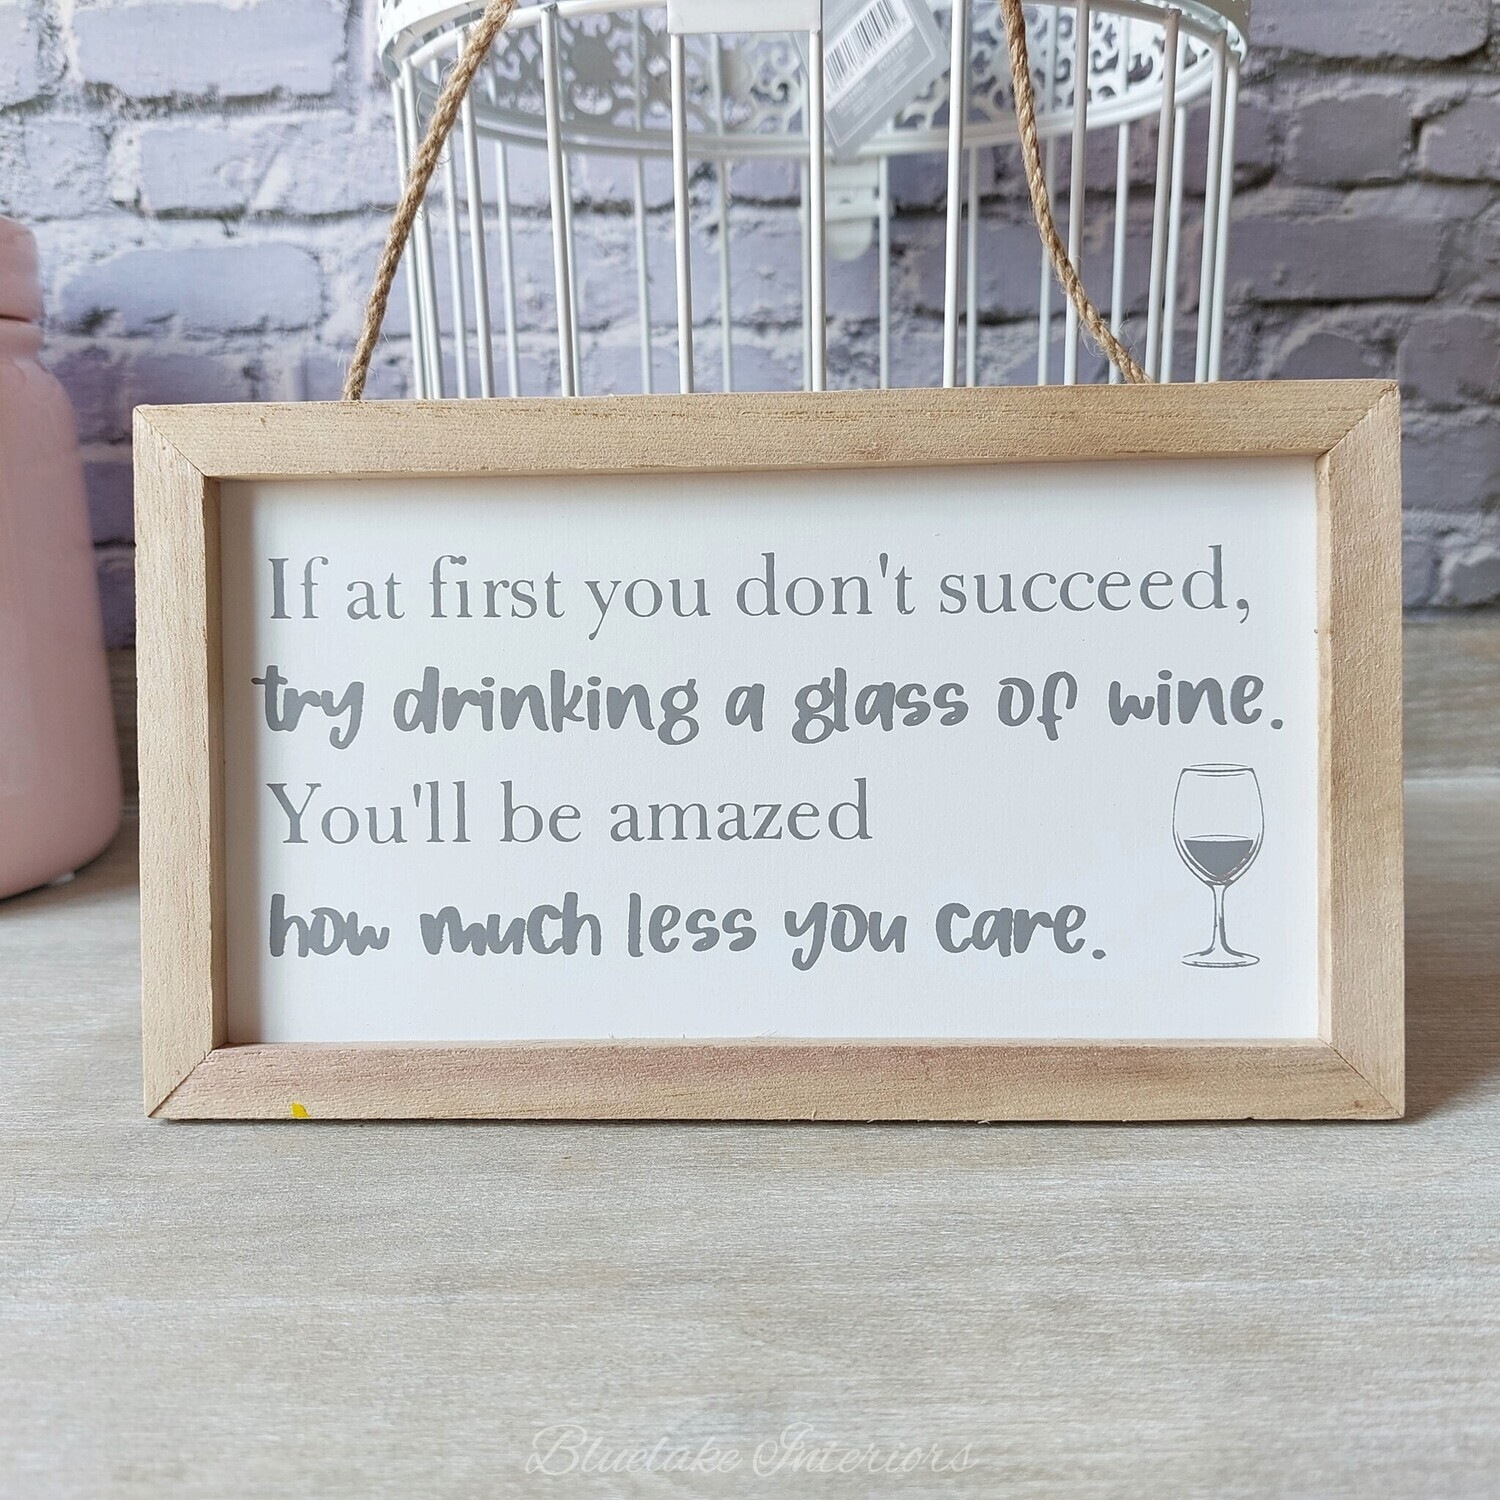 If At First You Don't Succeed Try Drinking A Glass Of Wine Hanging Wall Plaque